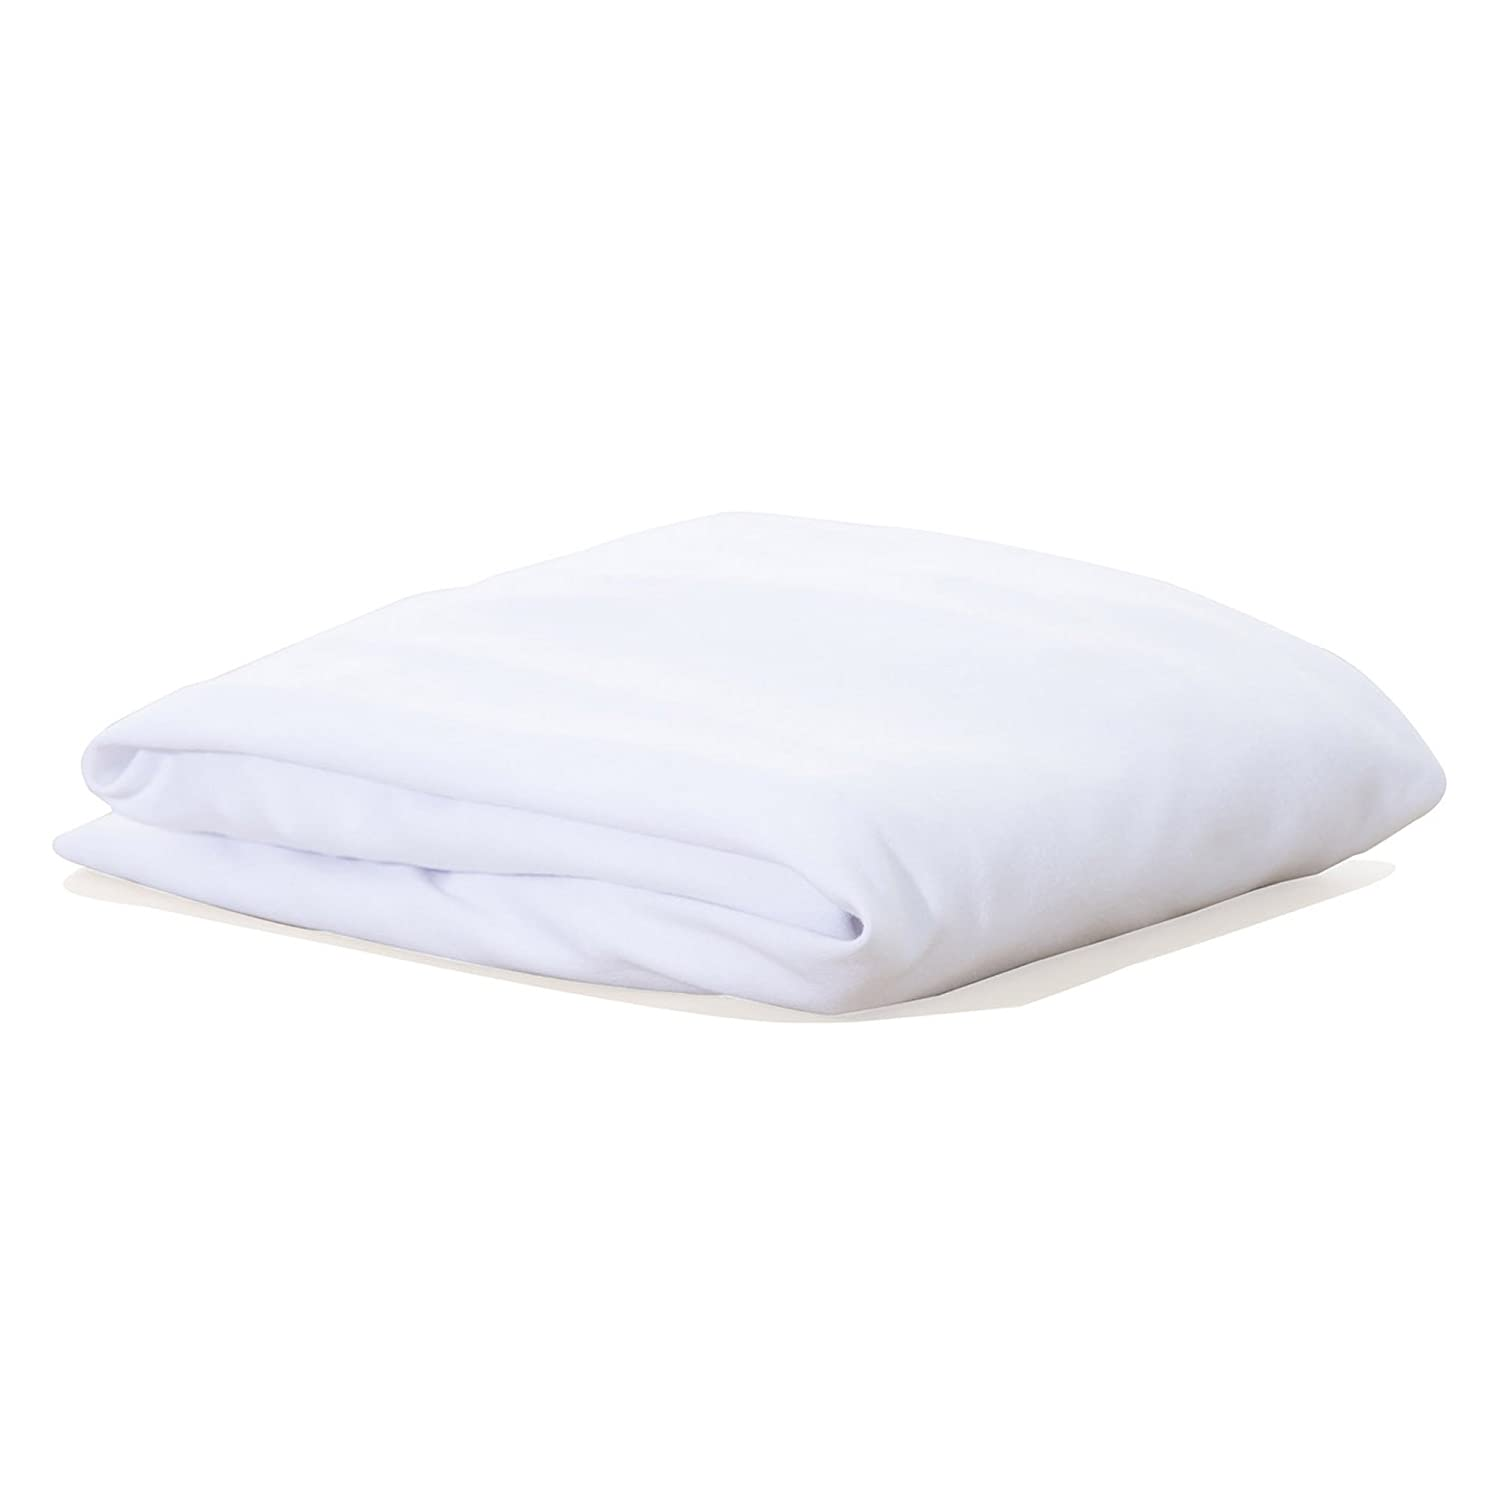 JOOVY Room Waterproof Fitted Sheet 9053